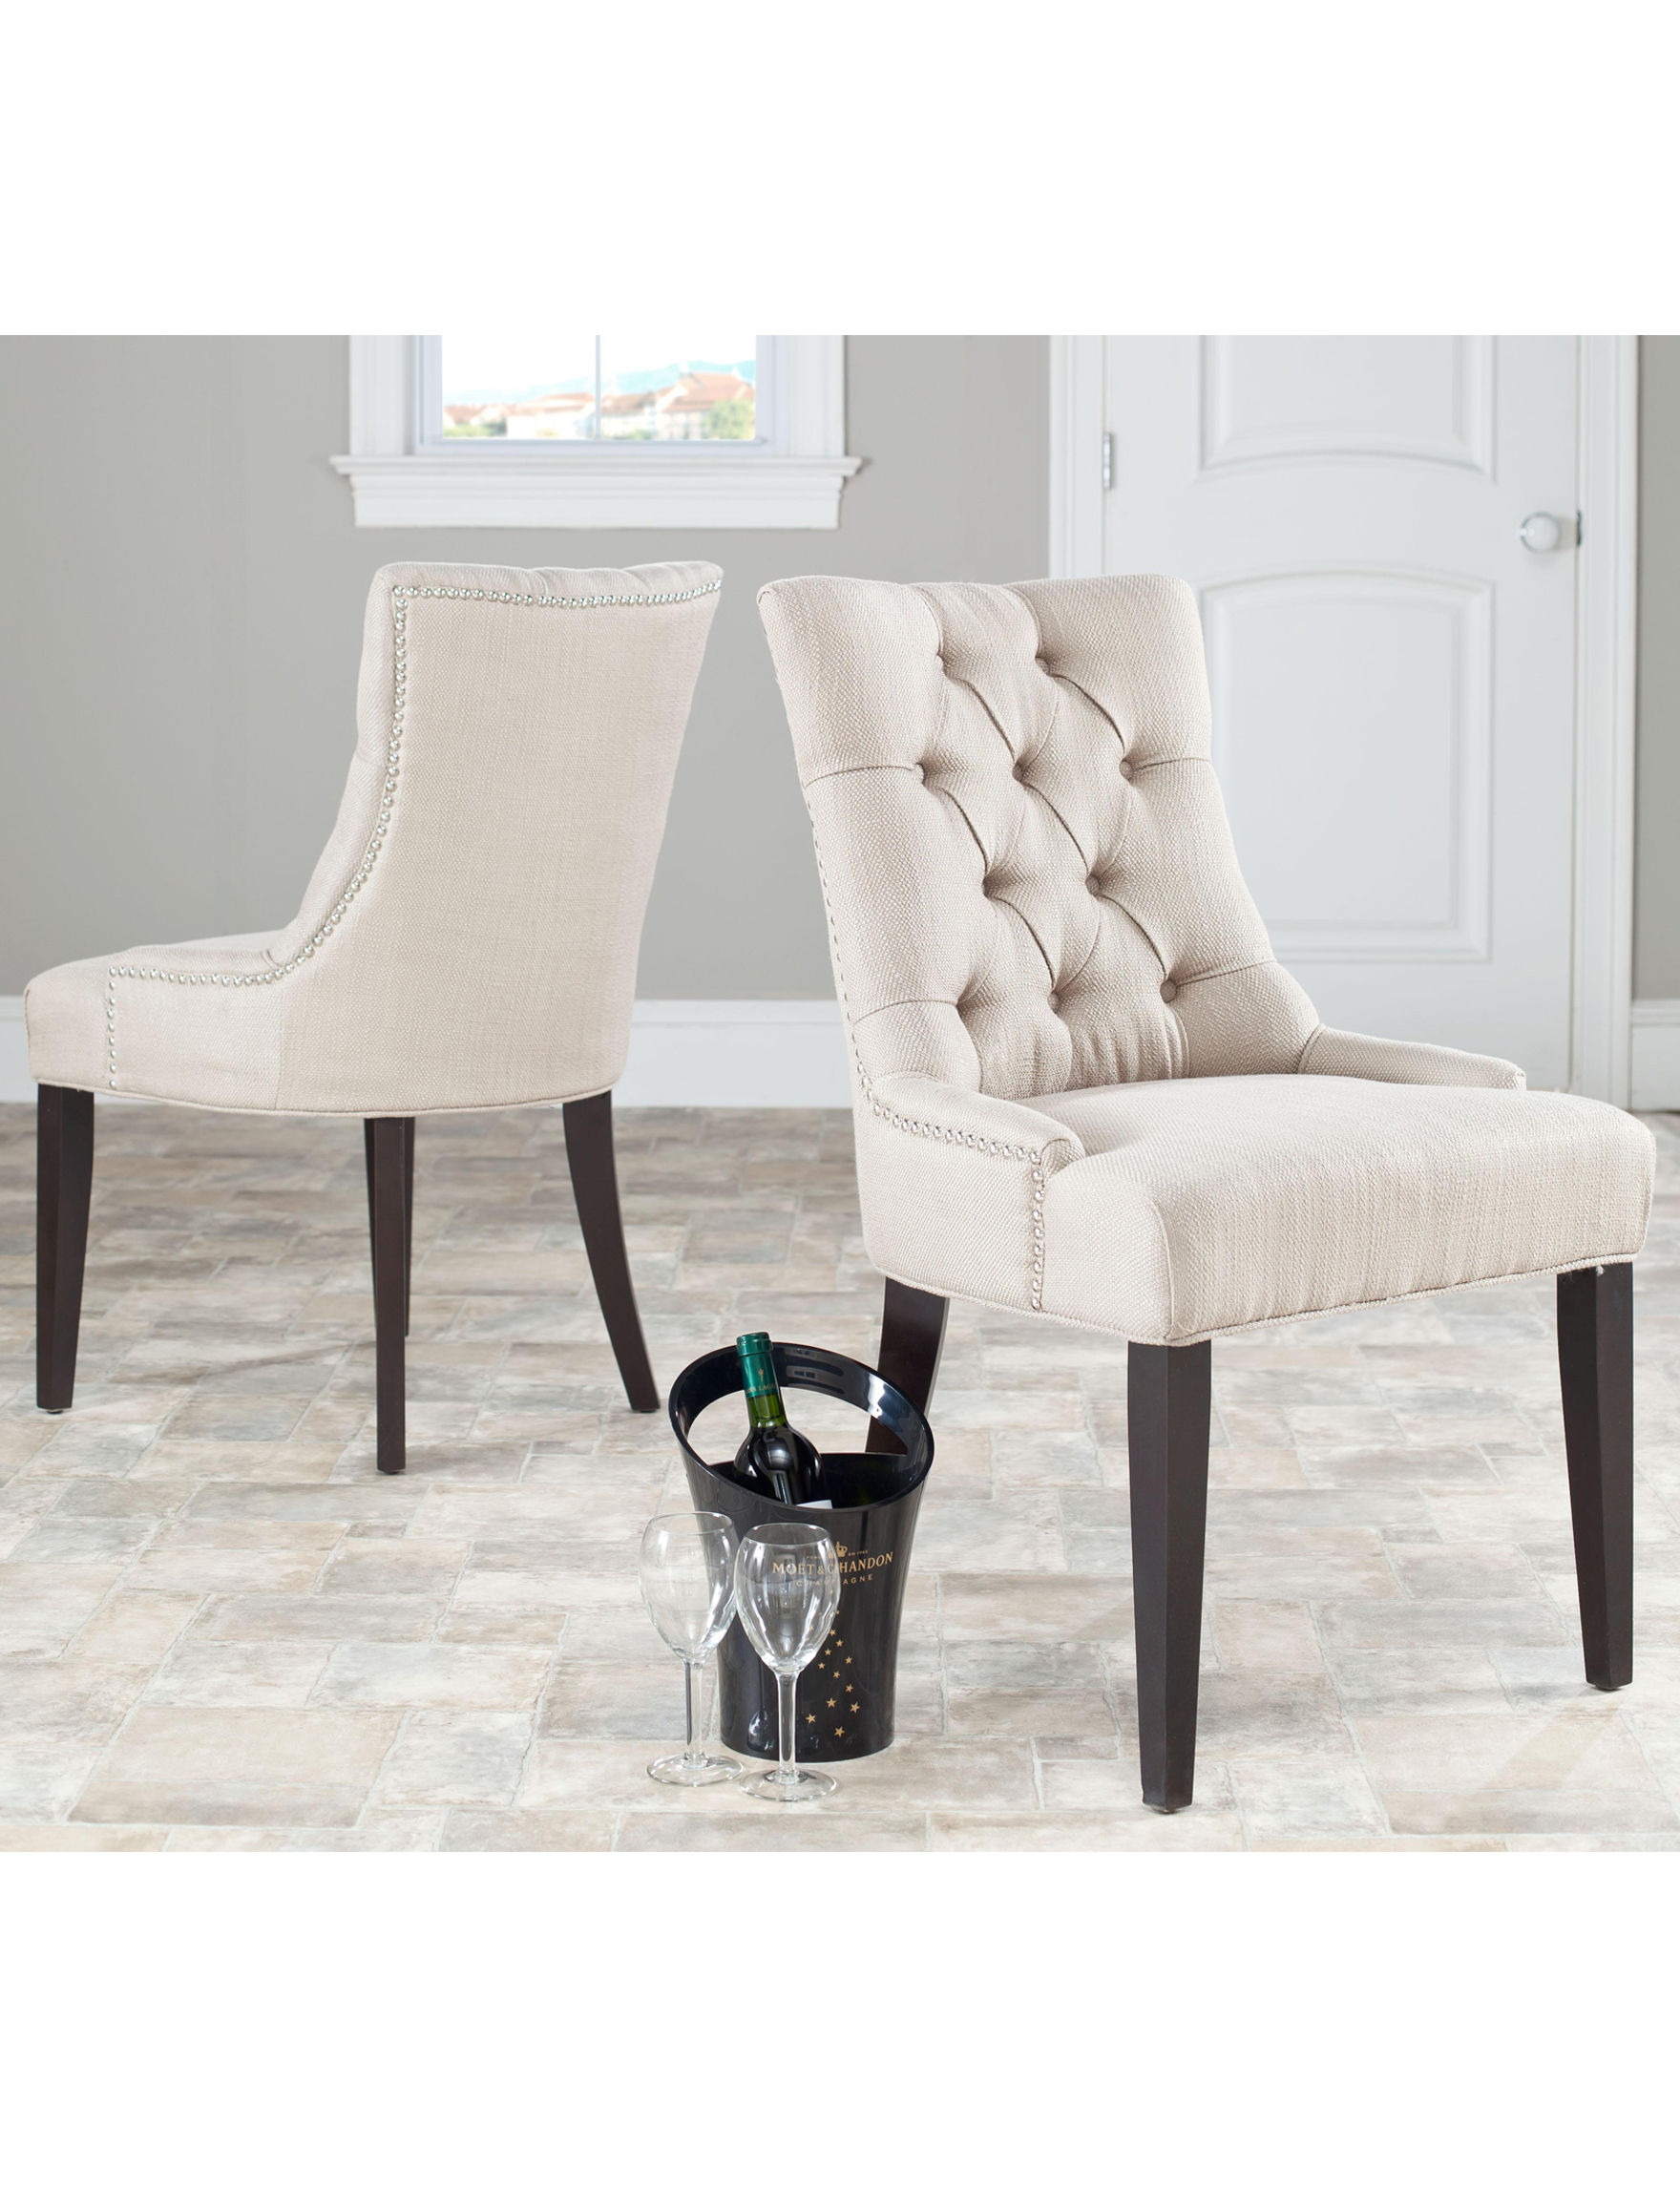 Safavieh Beige Accent Chairs Living Room Furniture